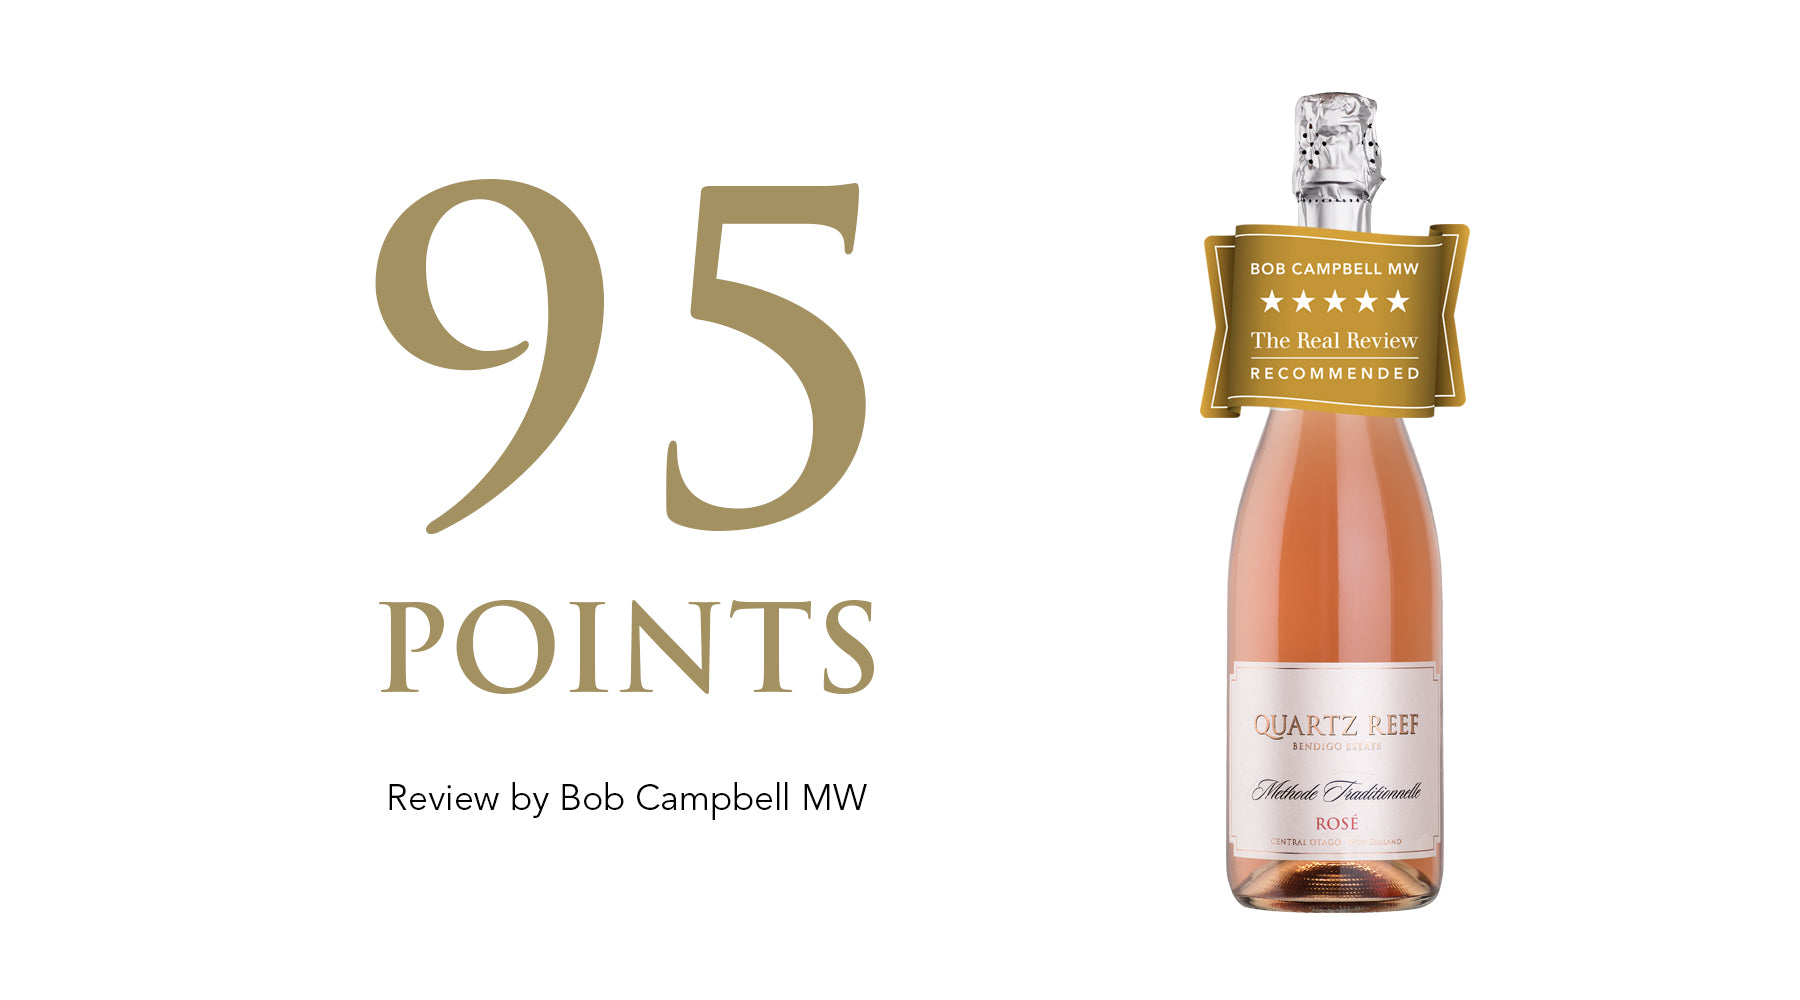 Methode Traditionnellé Rosé - Awarded 95 Points